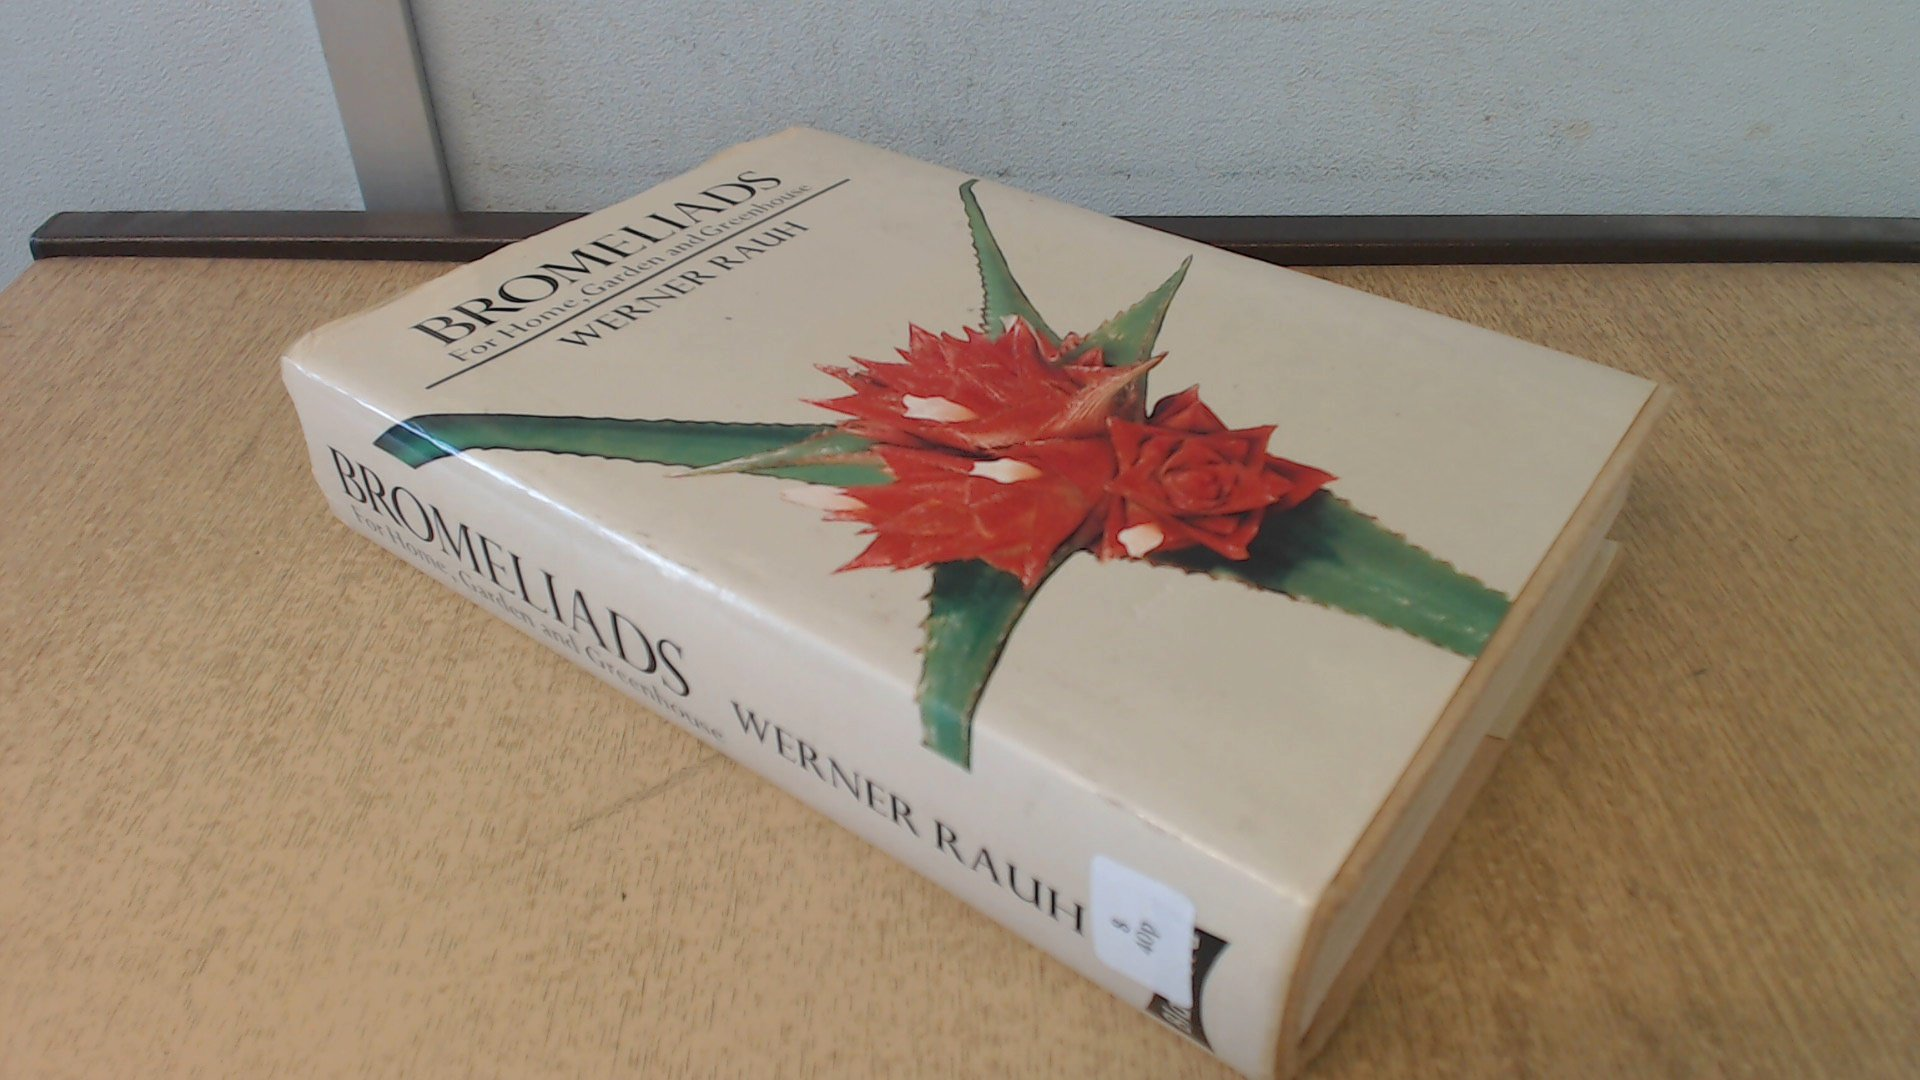 Bromeliads For Home, Garden and Greenhouse (English and German Edition)